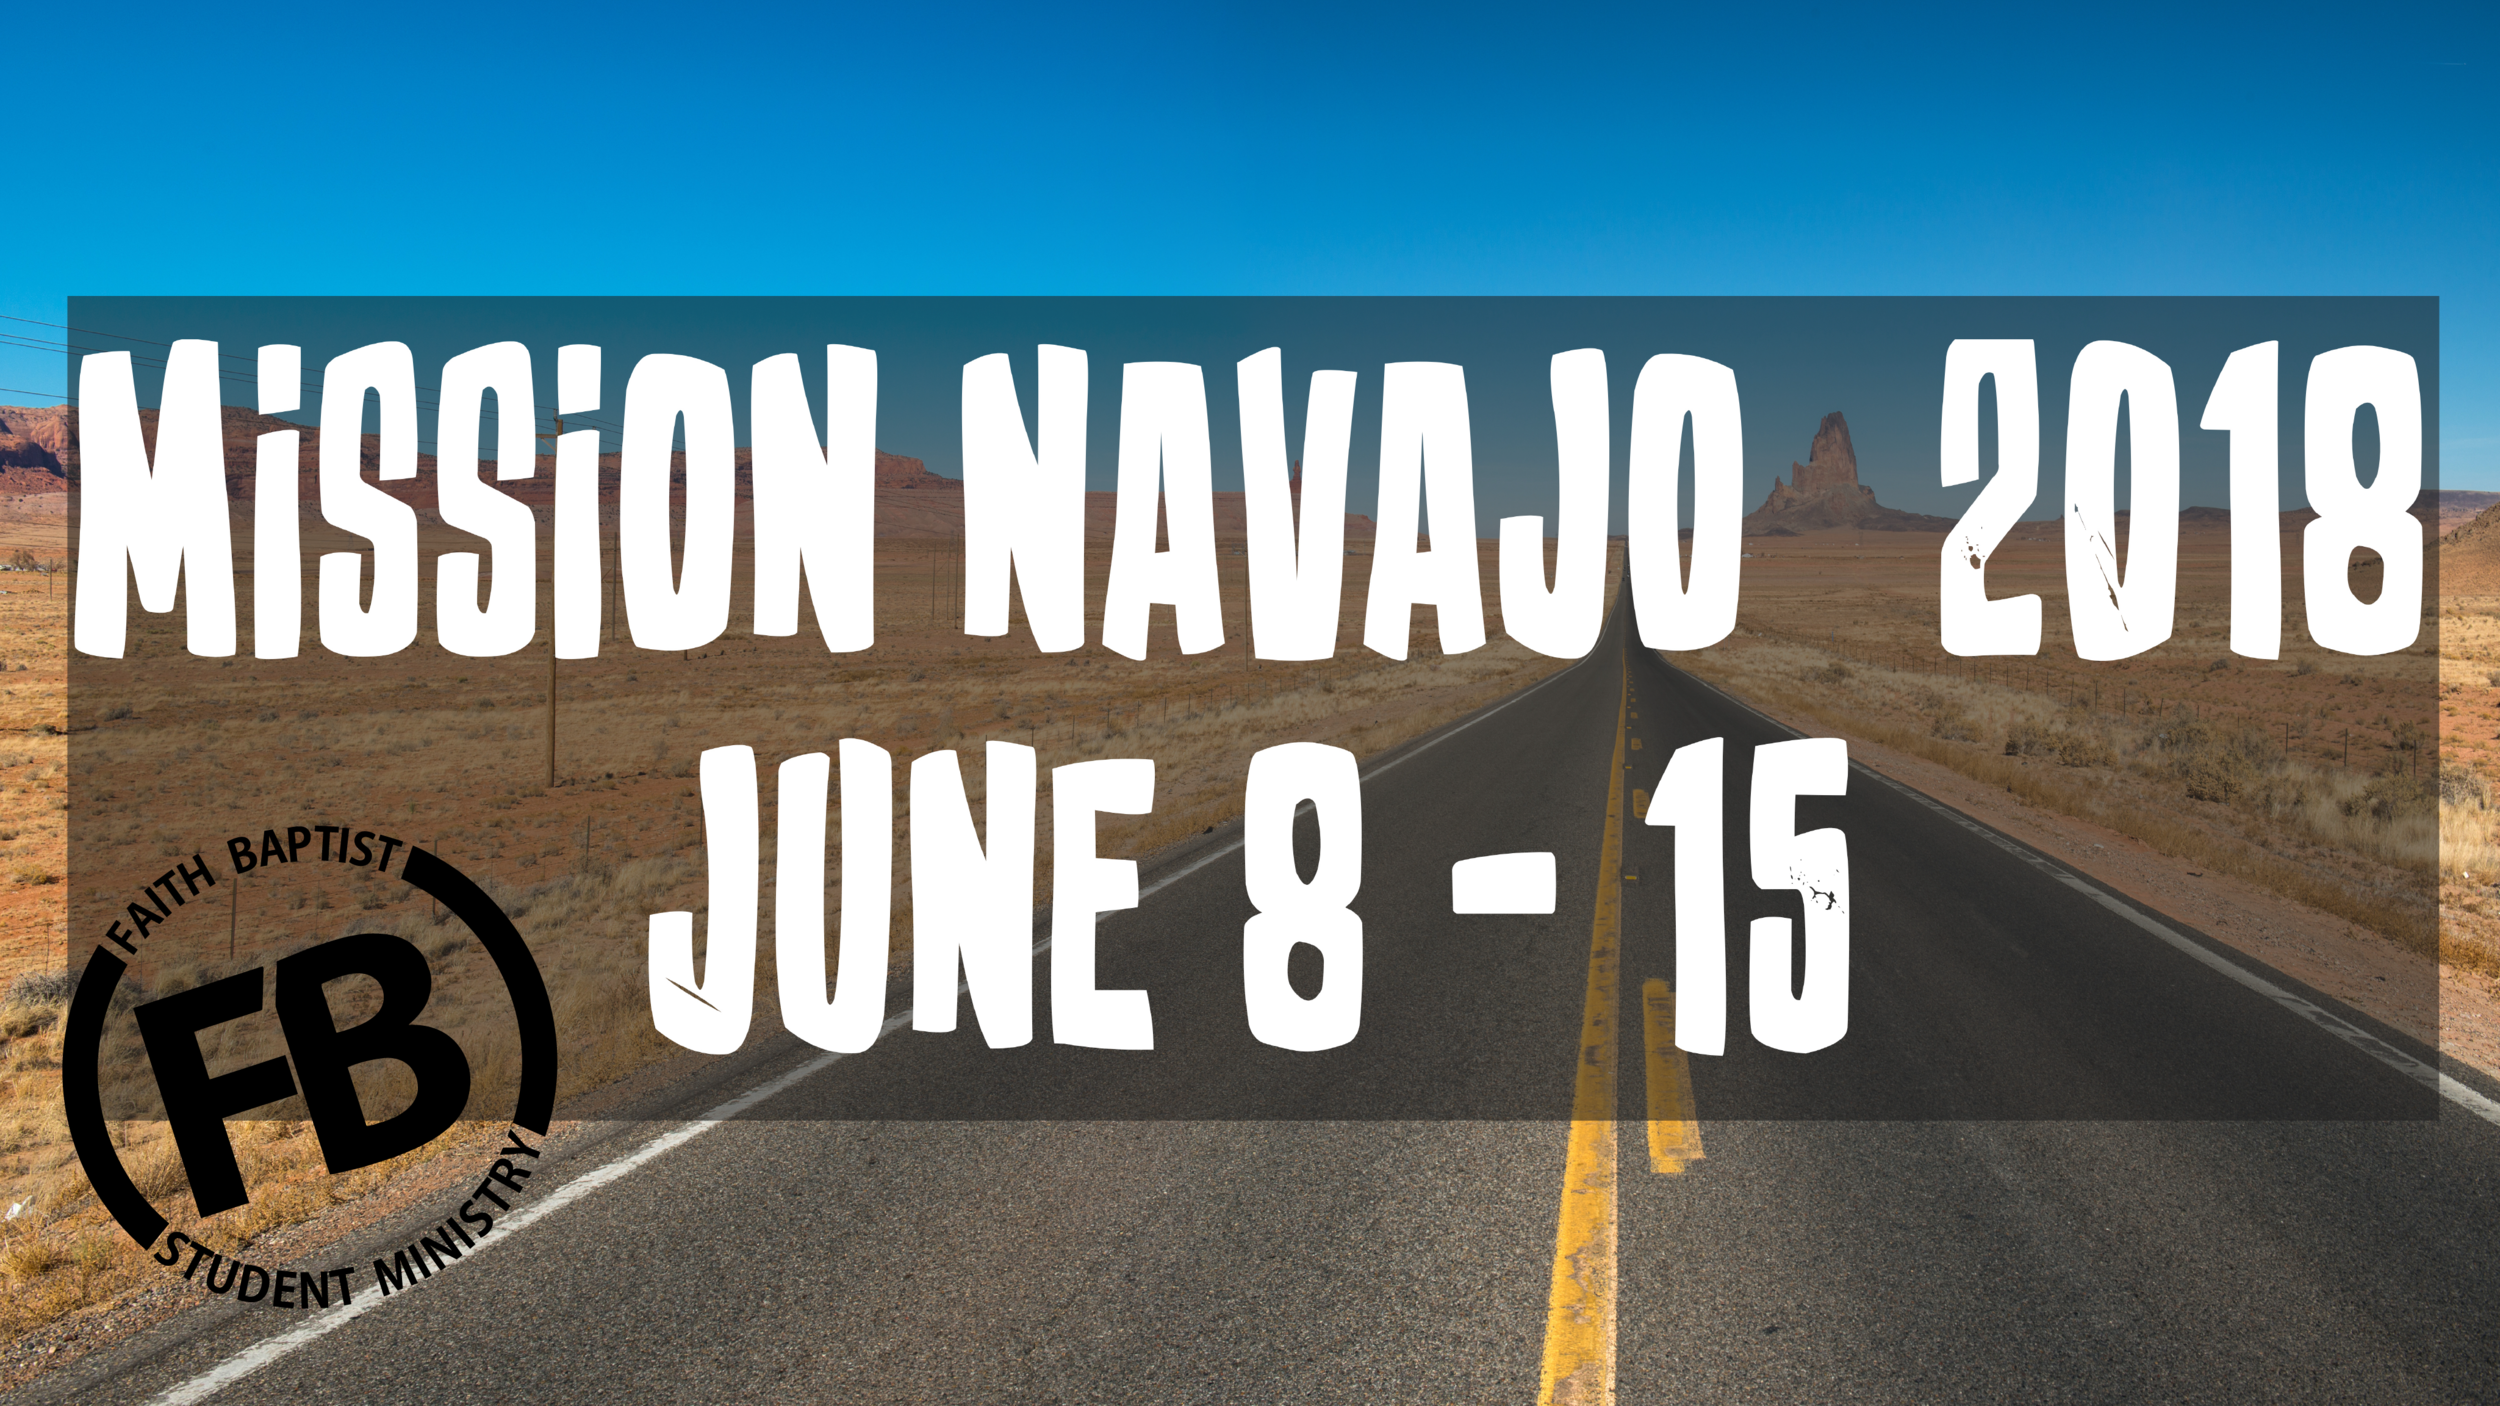 Mission trip to Northern New Mexico/Arizona to help out the Navajo mission.